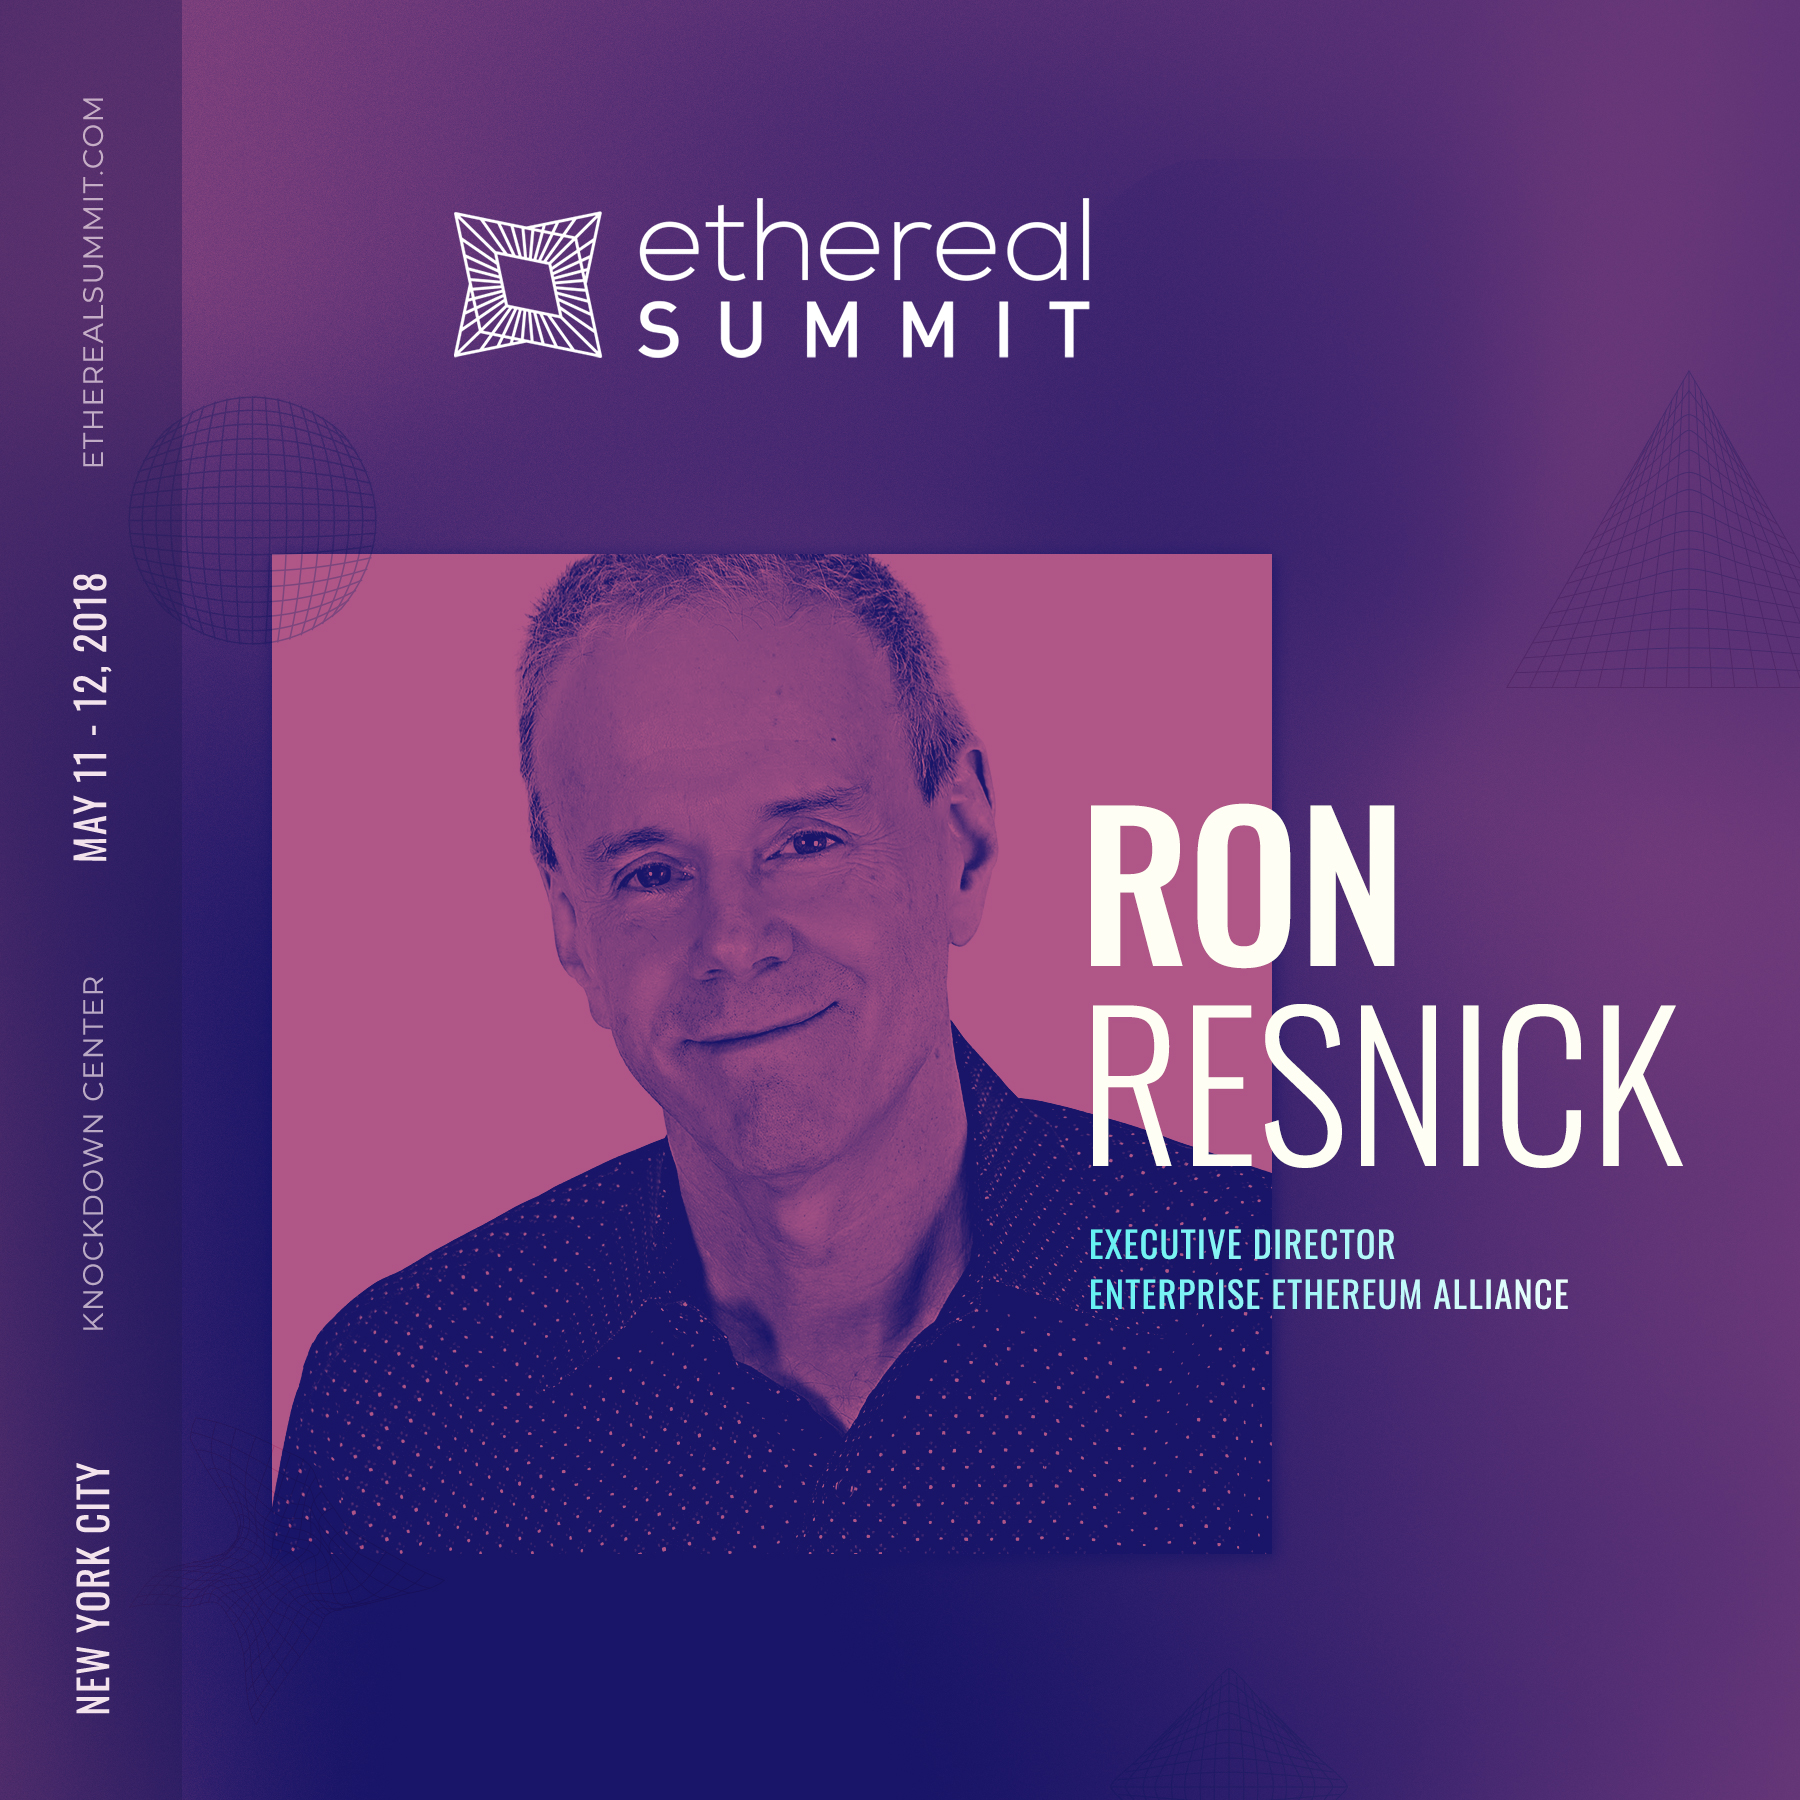 Ron Resnick